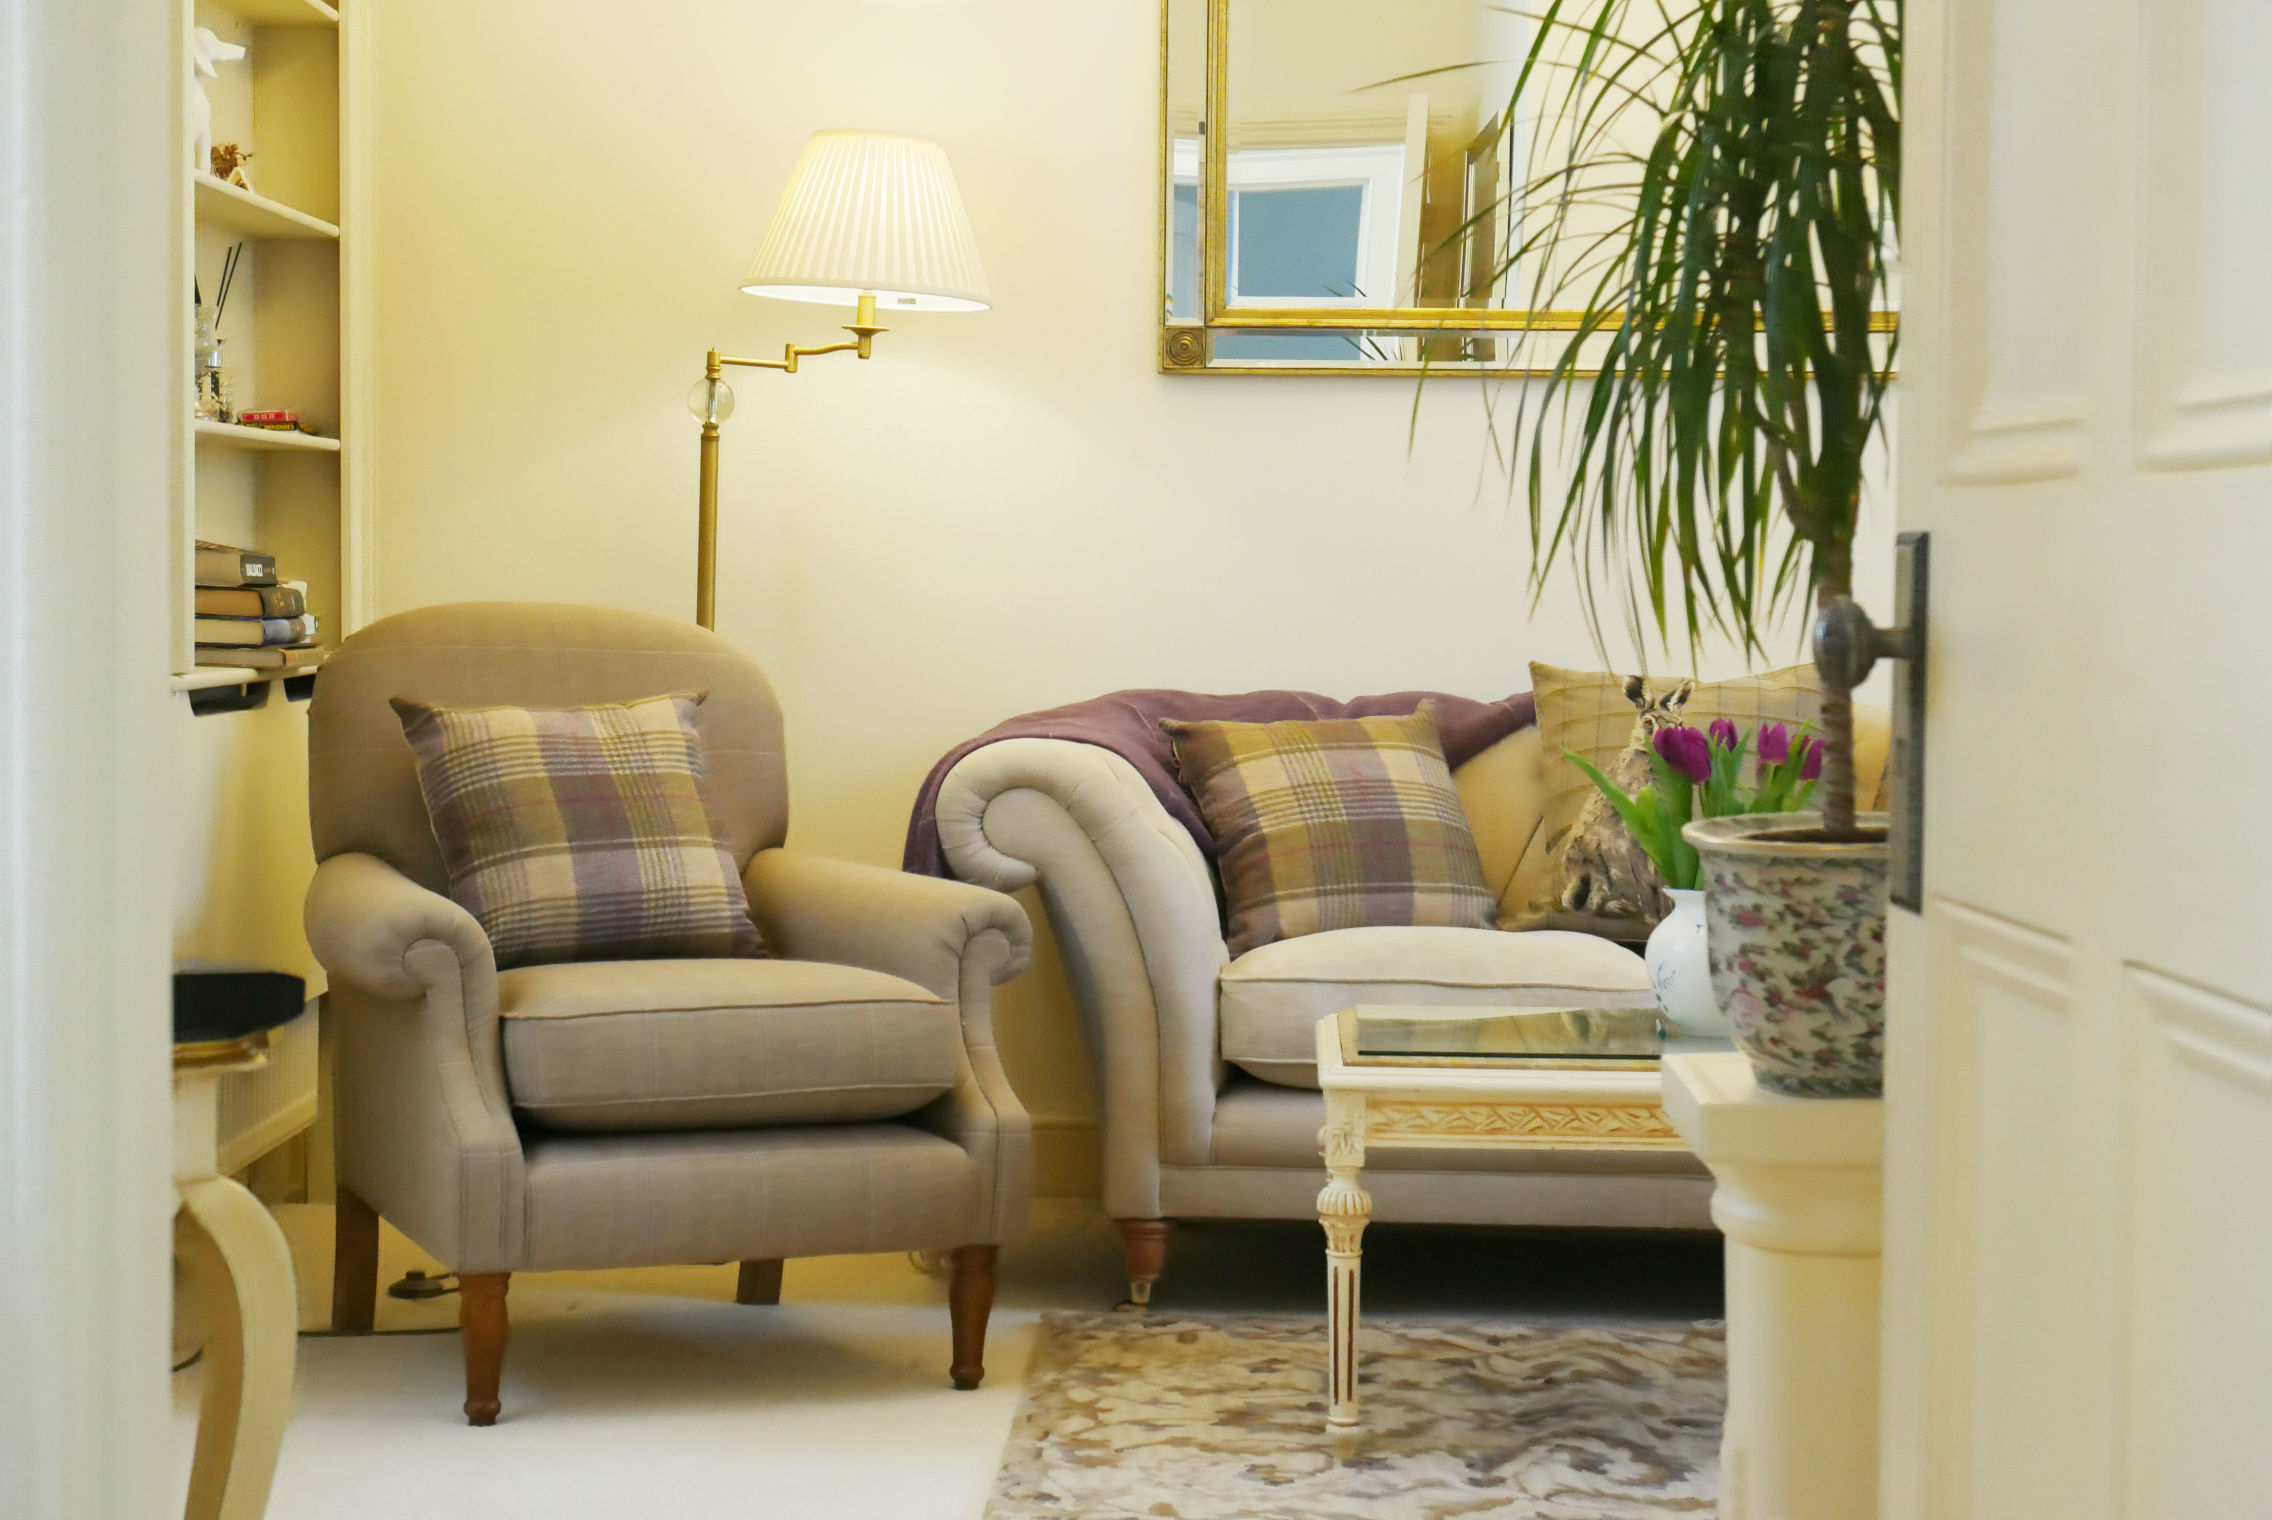 Hesketh Crescent Self Catering Holiday Rental in Torquay